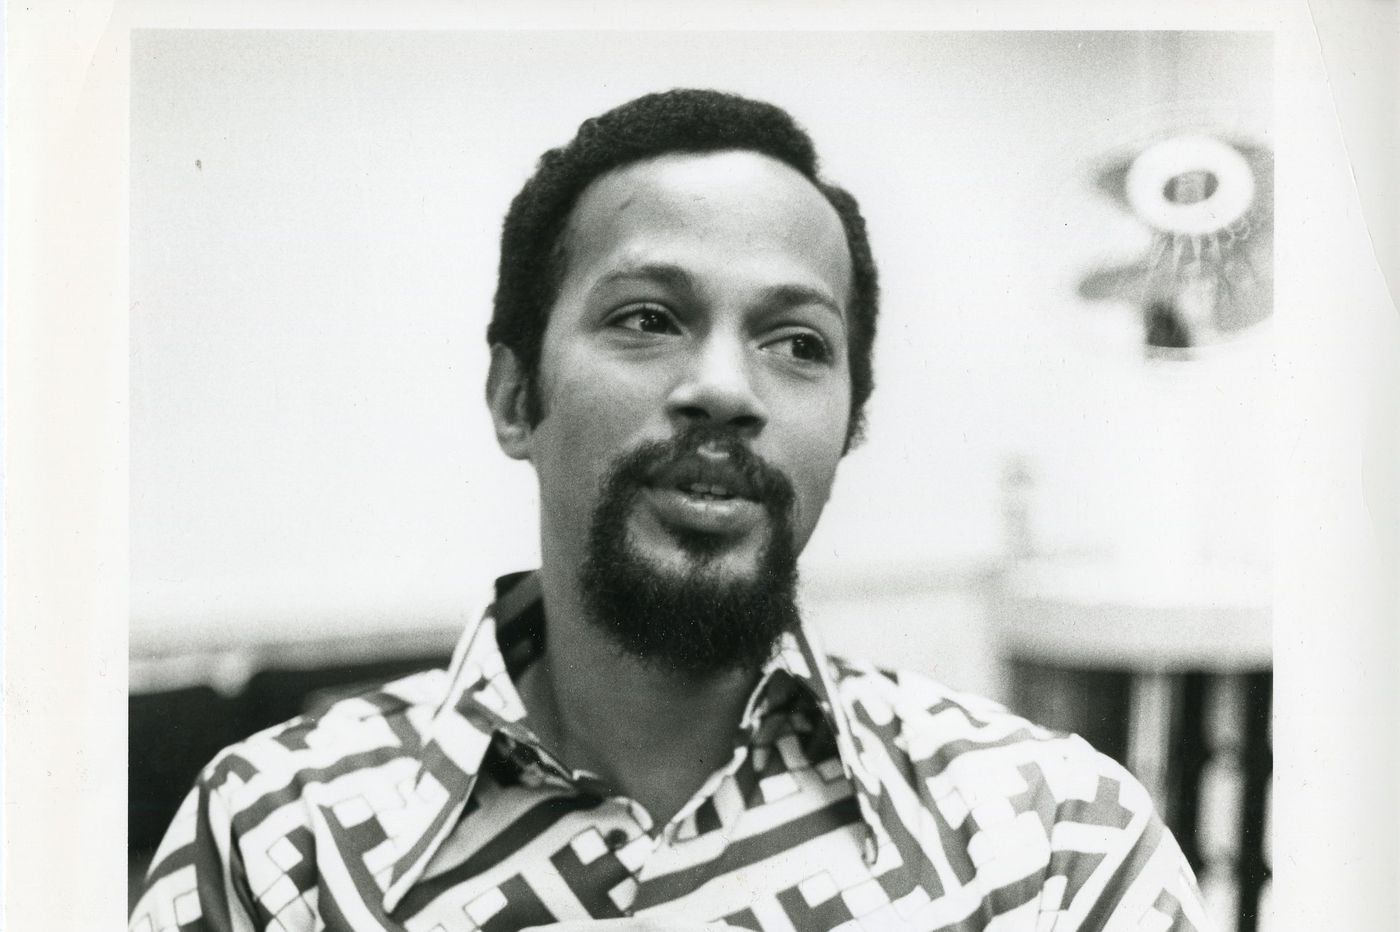 Now's the time to appreciate Philly soul great Thom Bell, one of 'The Mighty Three' alongside Gamble and Huff